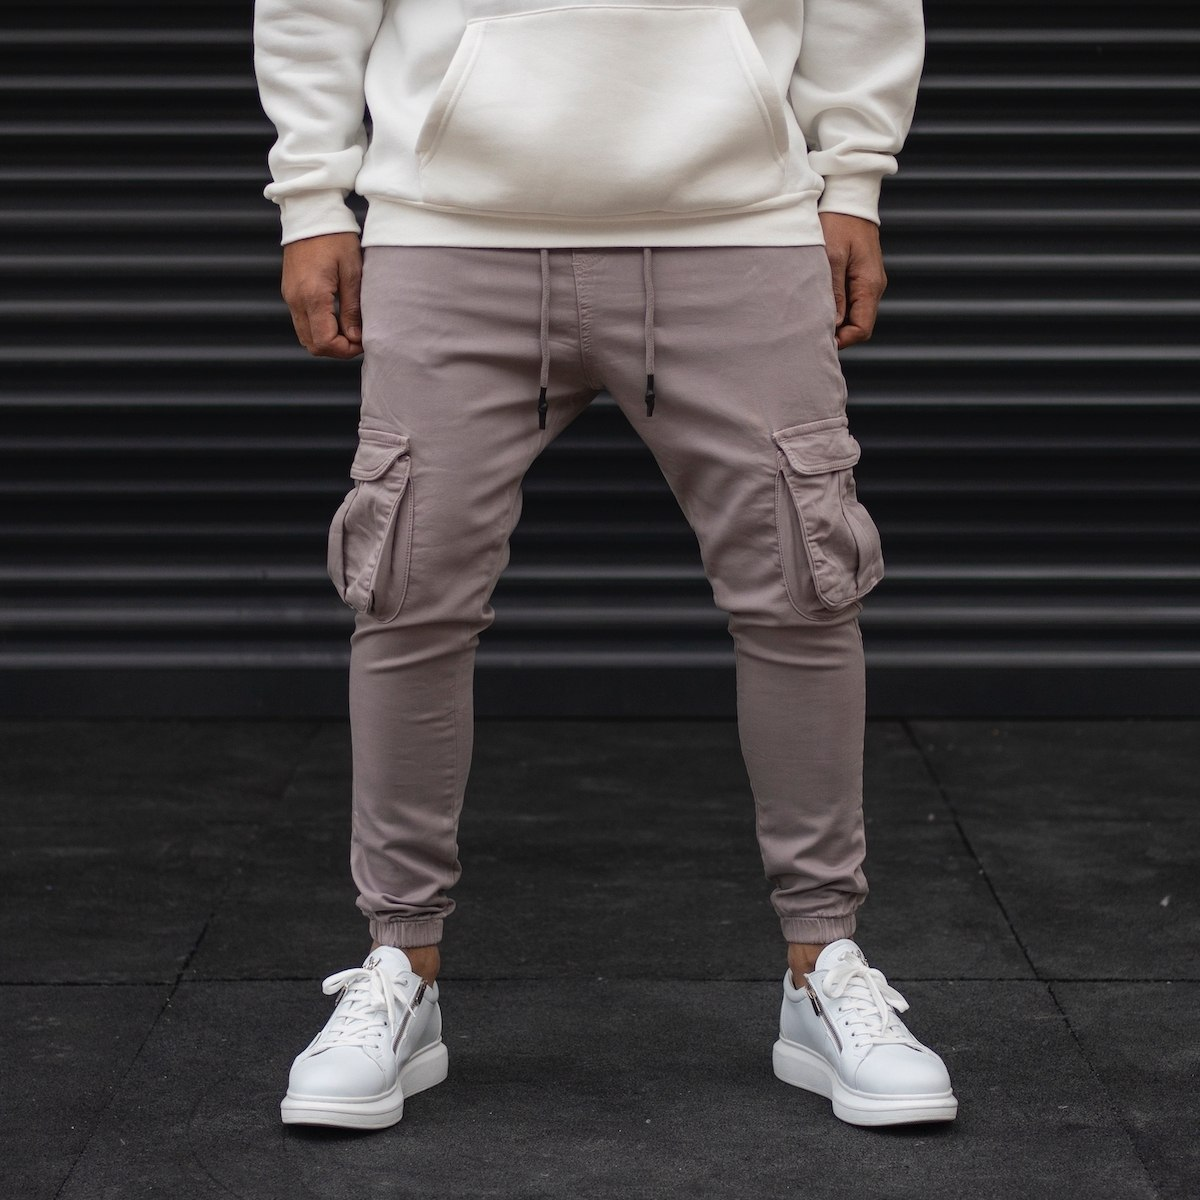 Men's Cargo Joggers With Pockets In Gray